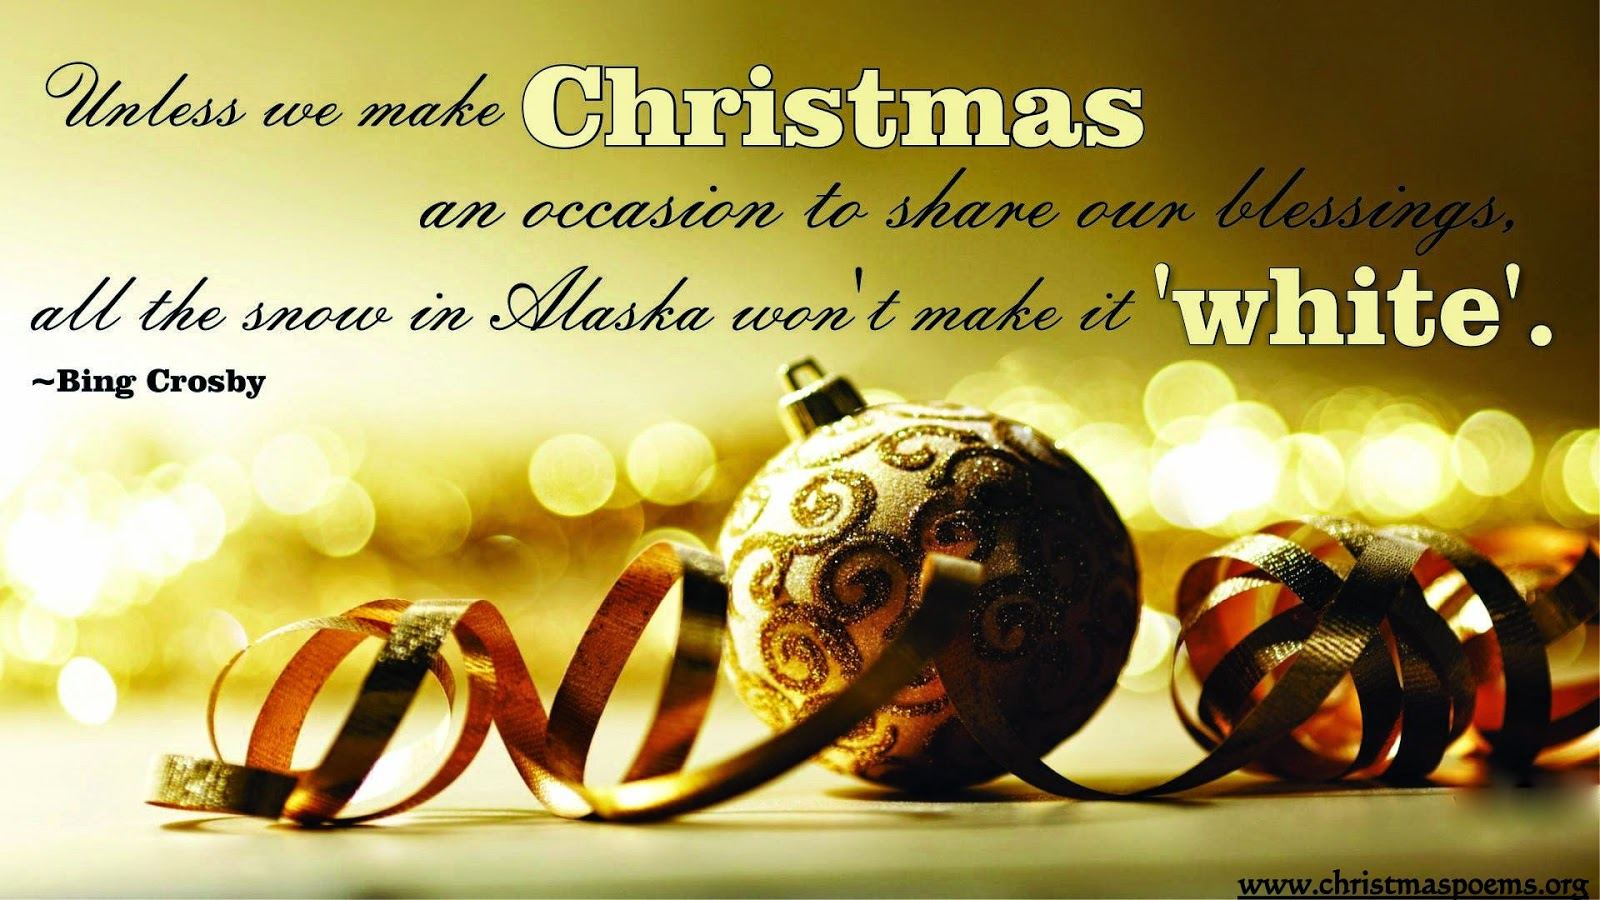 Merry Christmas Quotes Wishes Sms Greetings W Images 2016